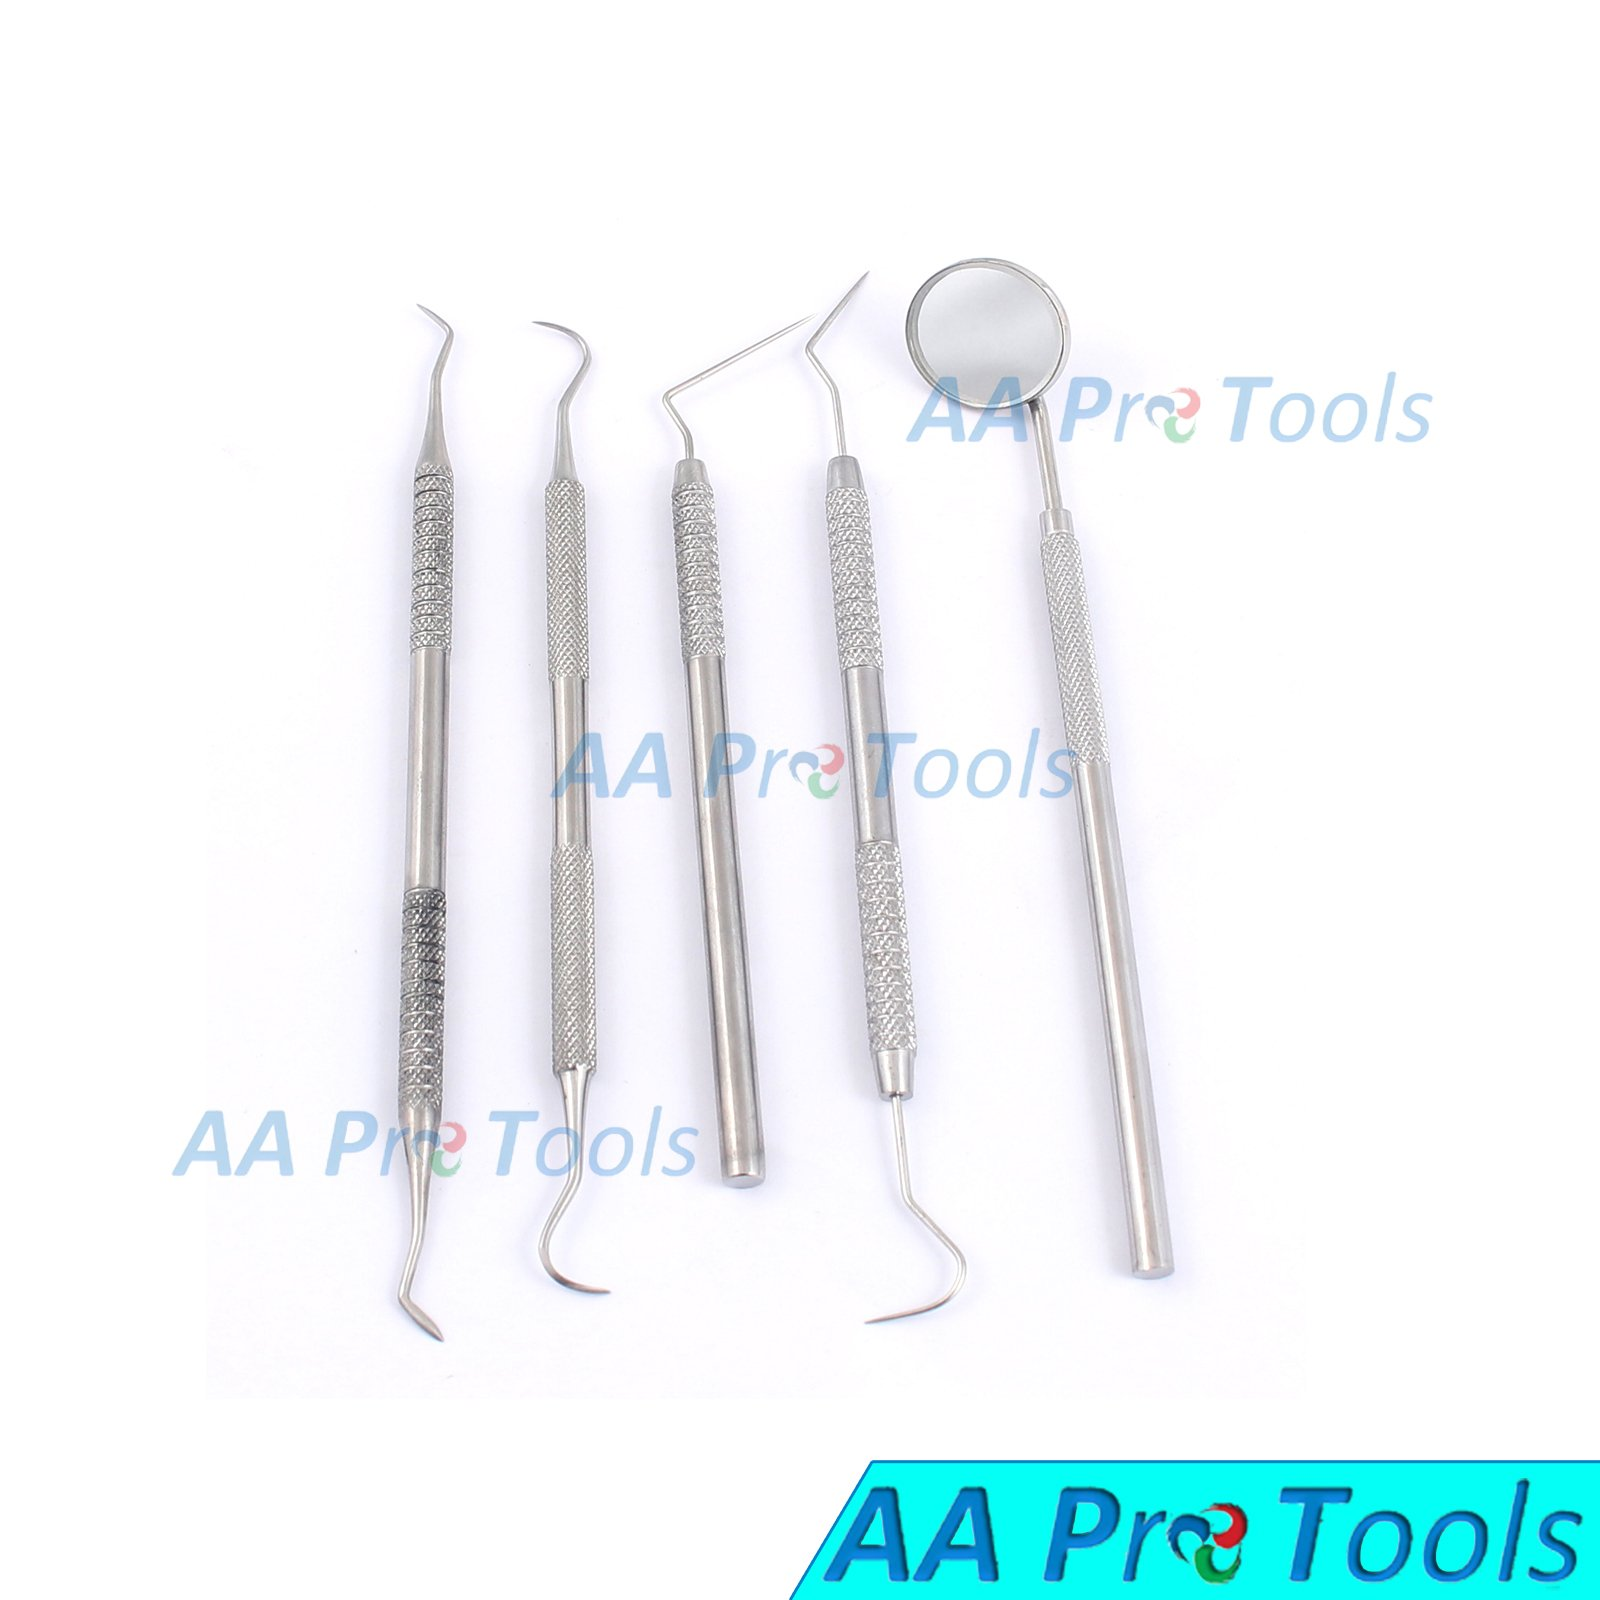 AA PRO GERMAN GRADE STAINLESS DENTAL DENTIST PICK TOOL KIT 5 PIECE A+ QUALITY